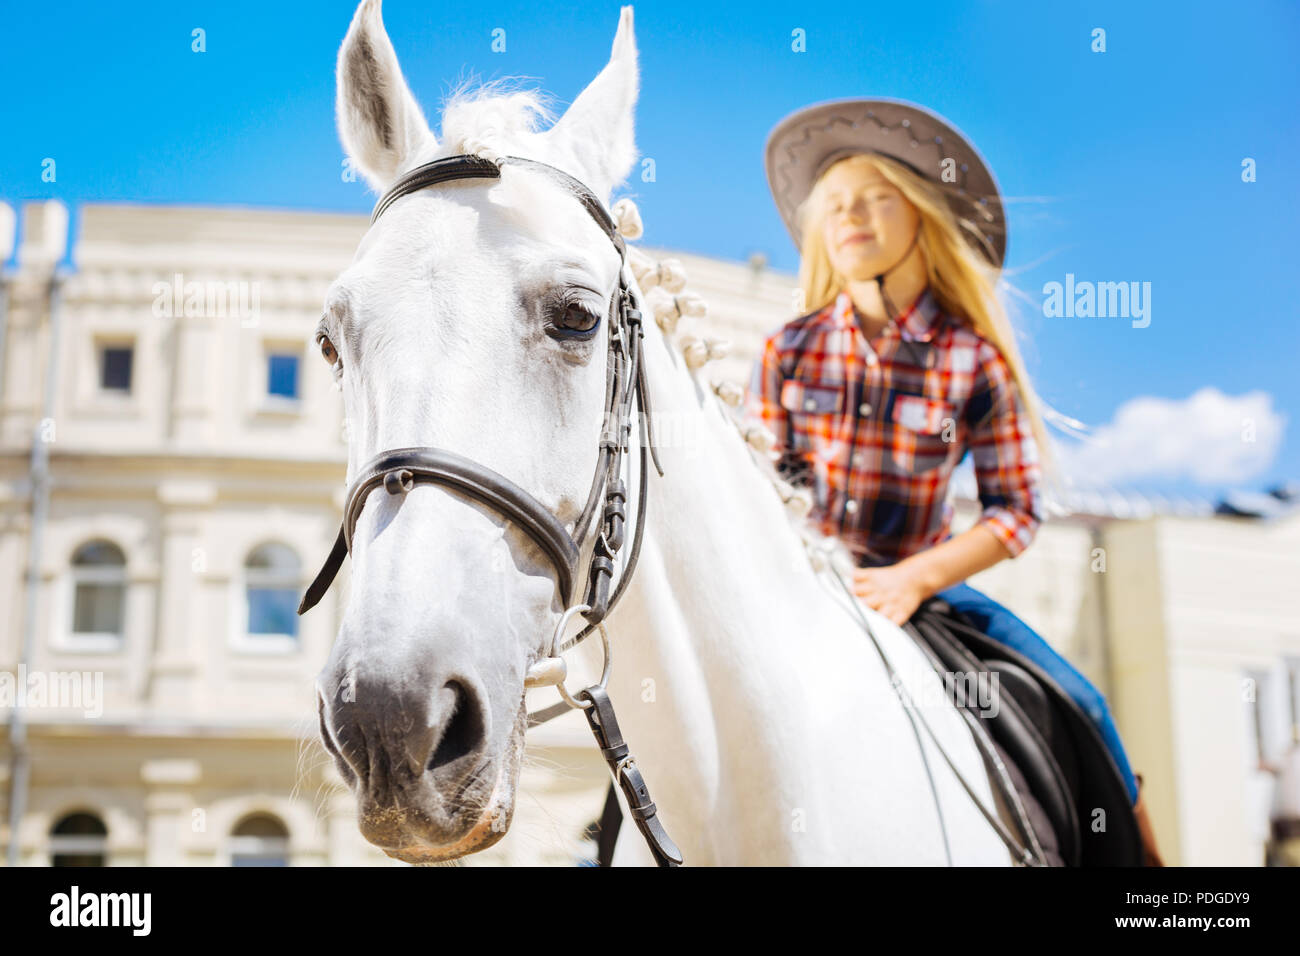 White racing horse standing submissively with girl on him - Stock Image